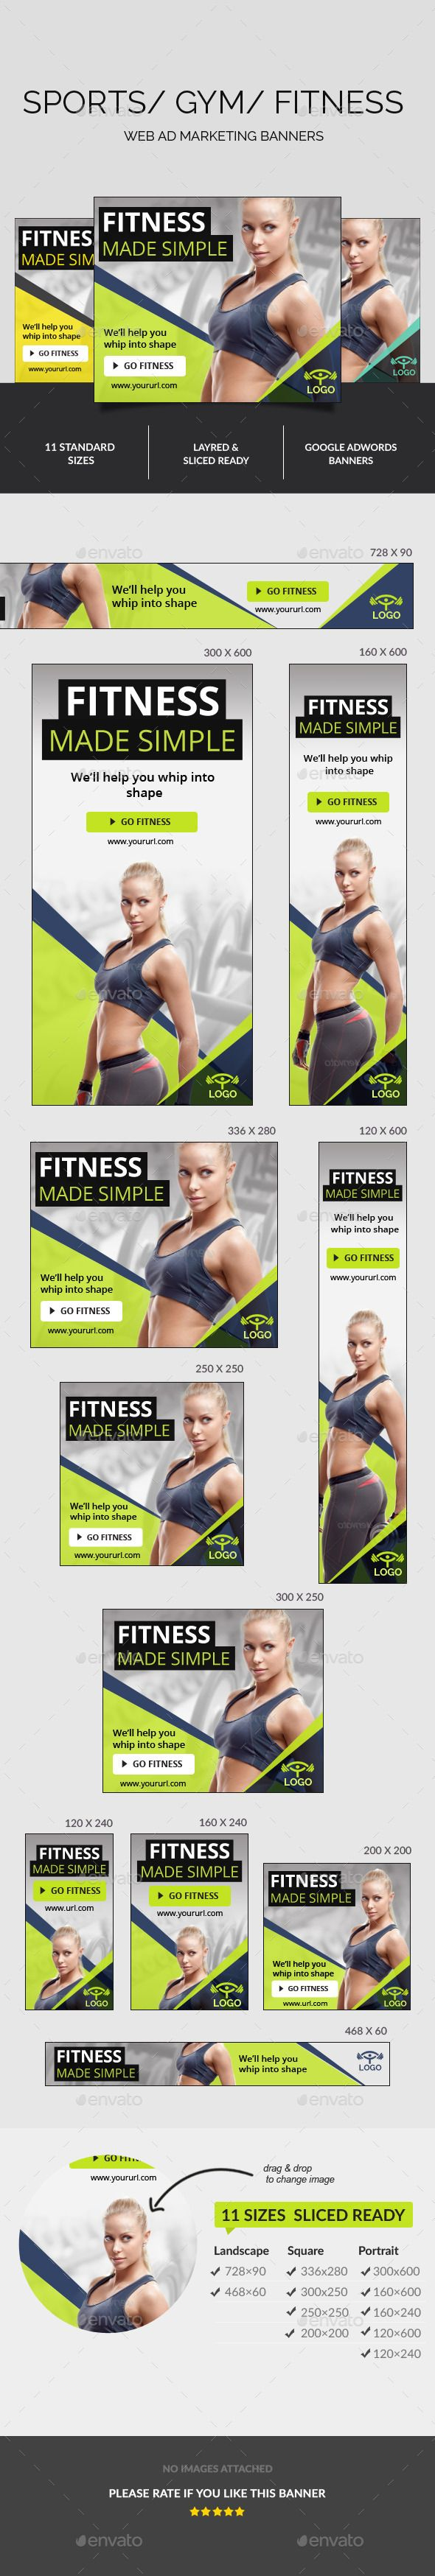 Fitness Ad Banners Template PSD | Download: http://graphicriver.net/item/fitness-ad-banners/11001130?ref=ksioks